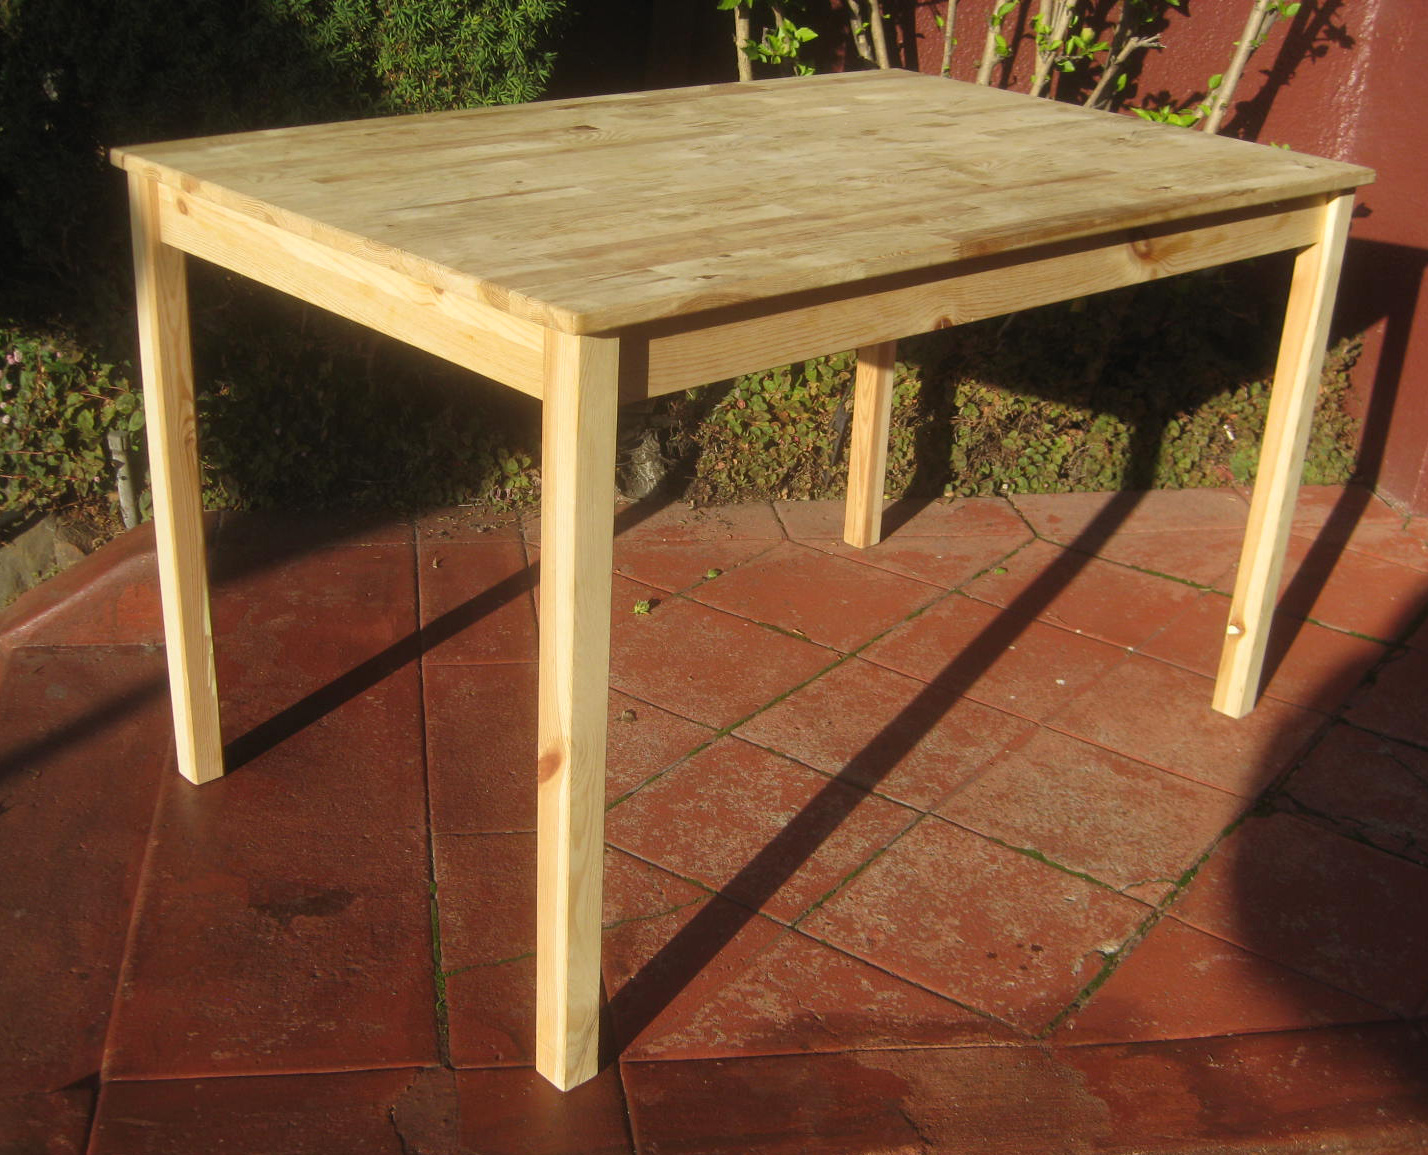 Birch kitchen table uhuru furniture collectibles sold birch kitchen table 50 dining table - Birch kitchen table ...